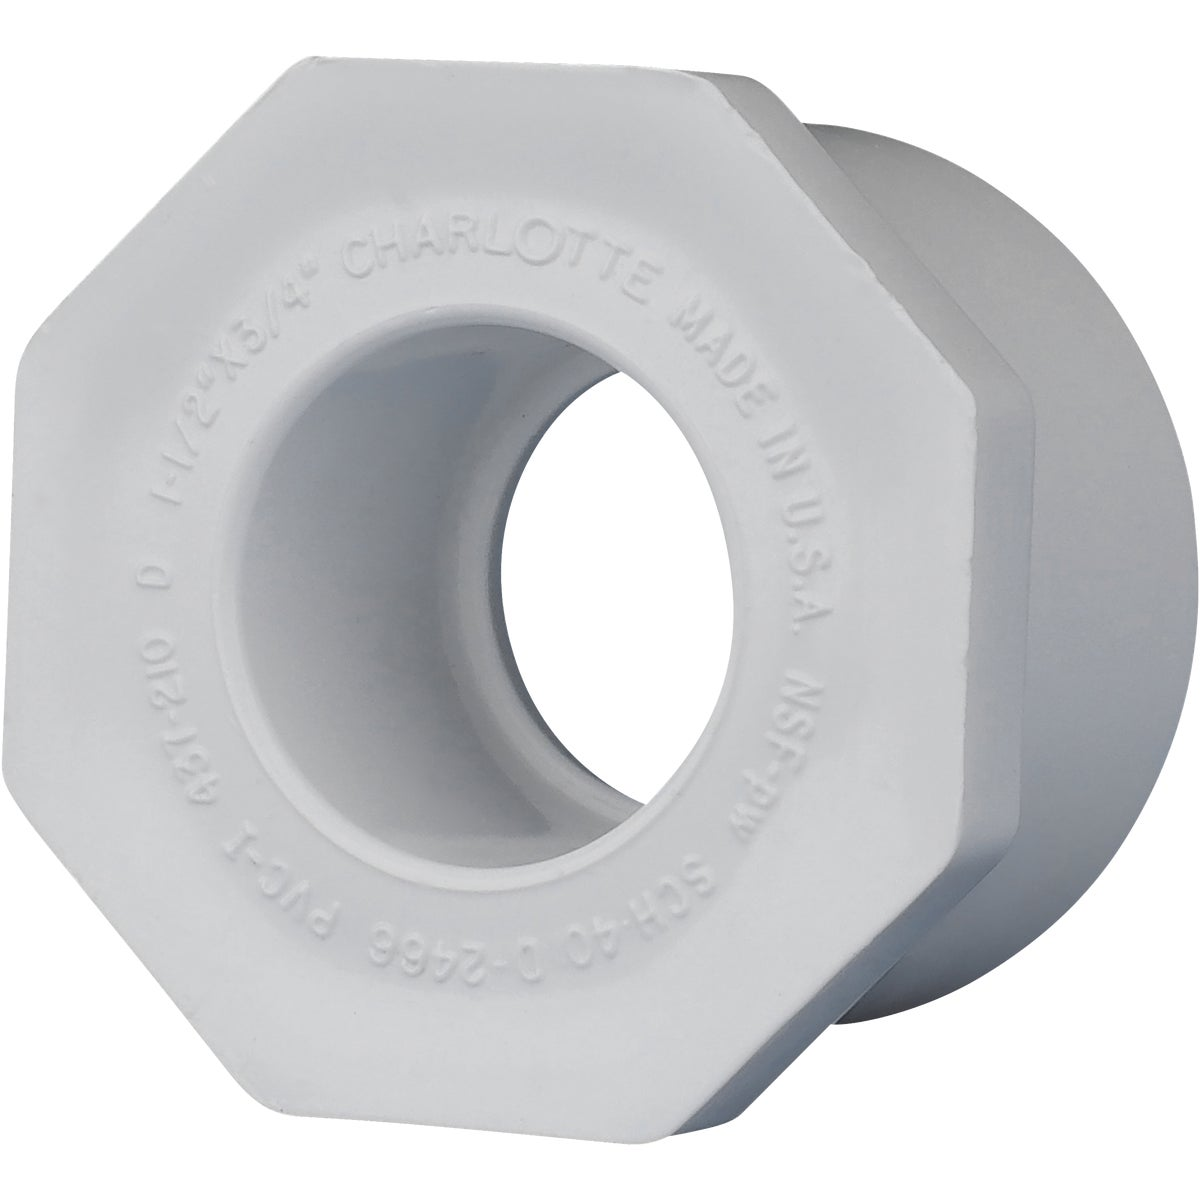 1-1/2X3/4 SPGXS BUSHING - 30257 by Genova Inc